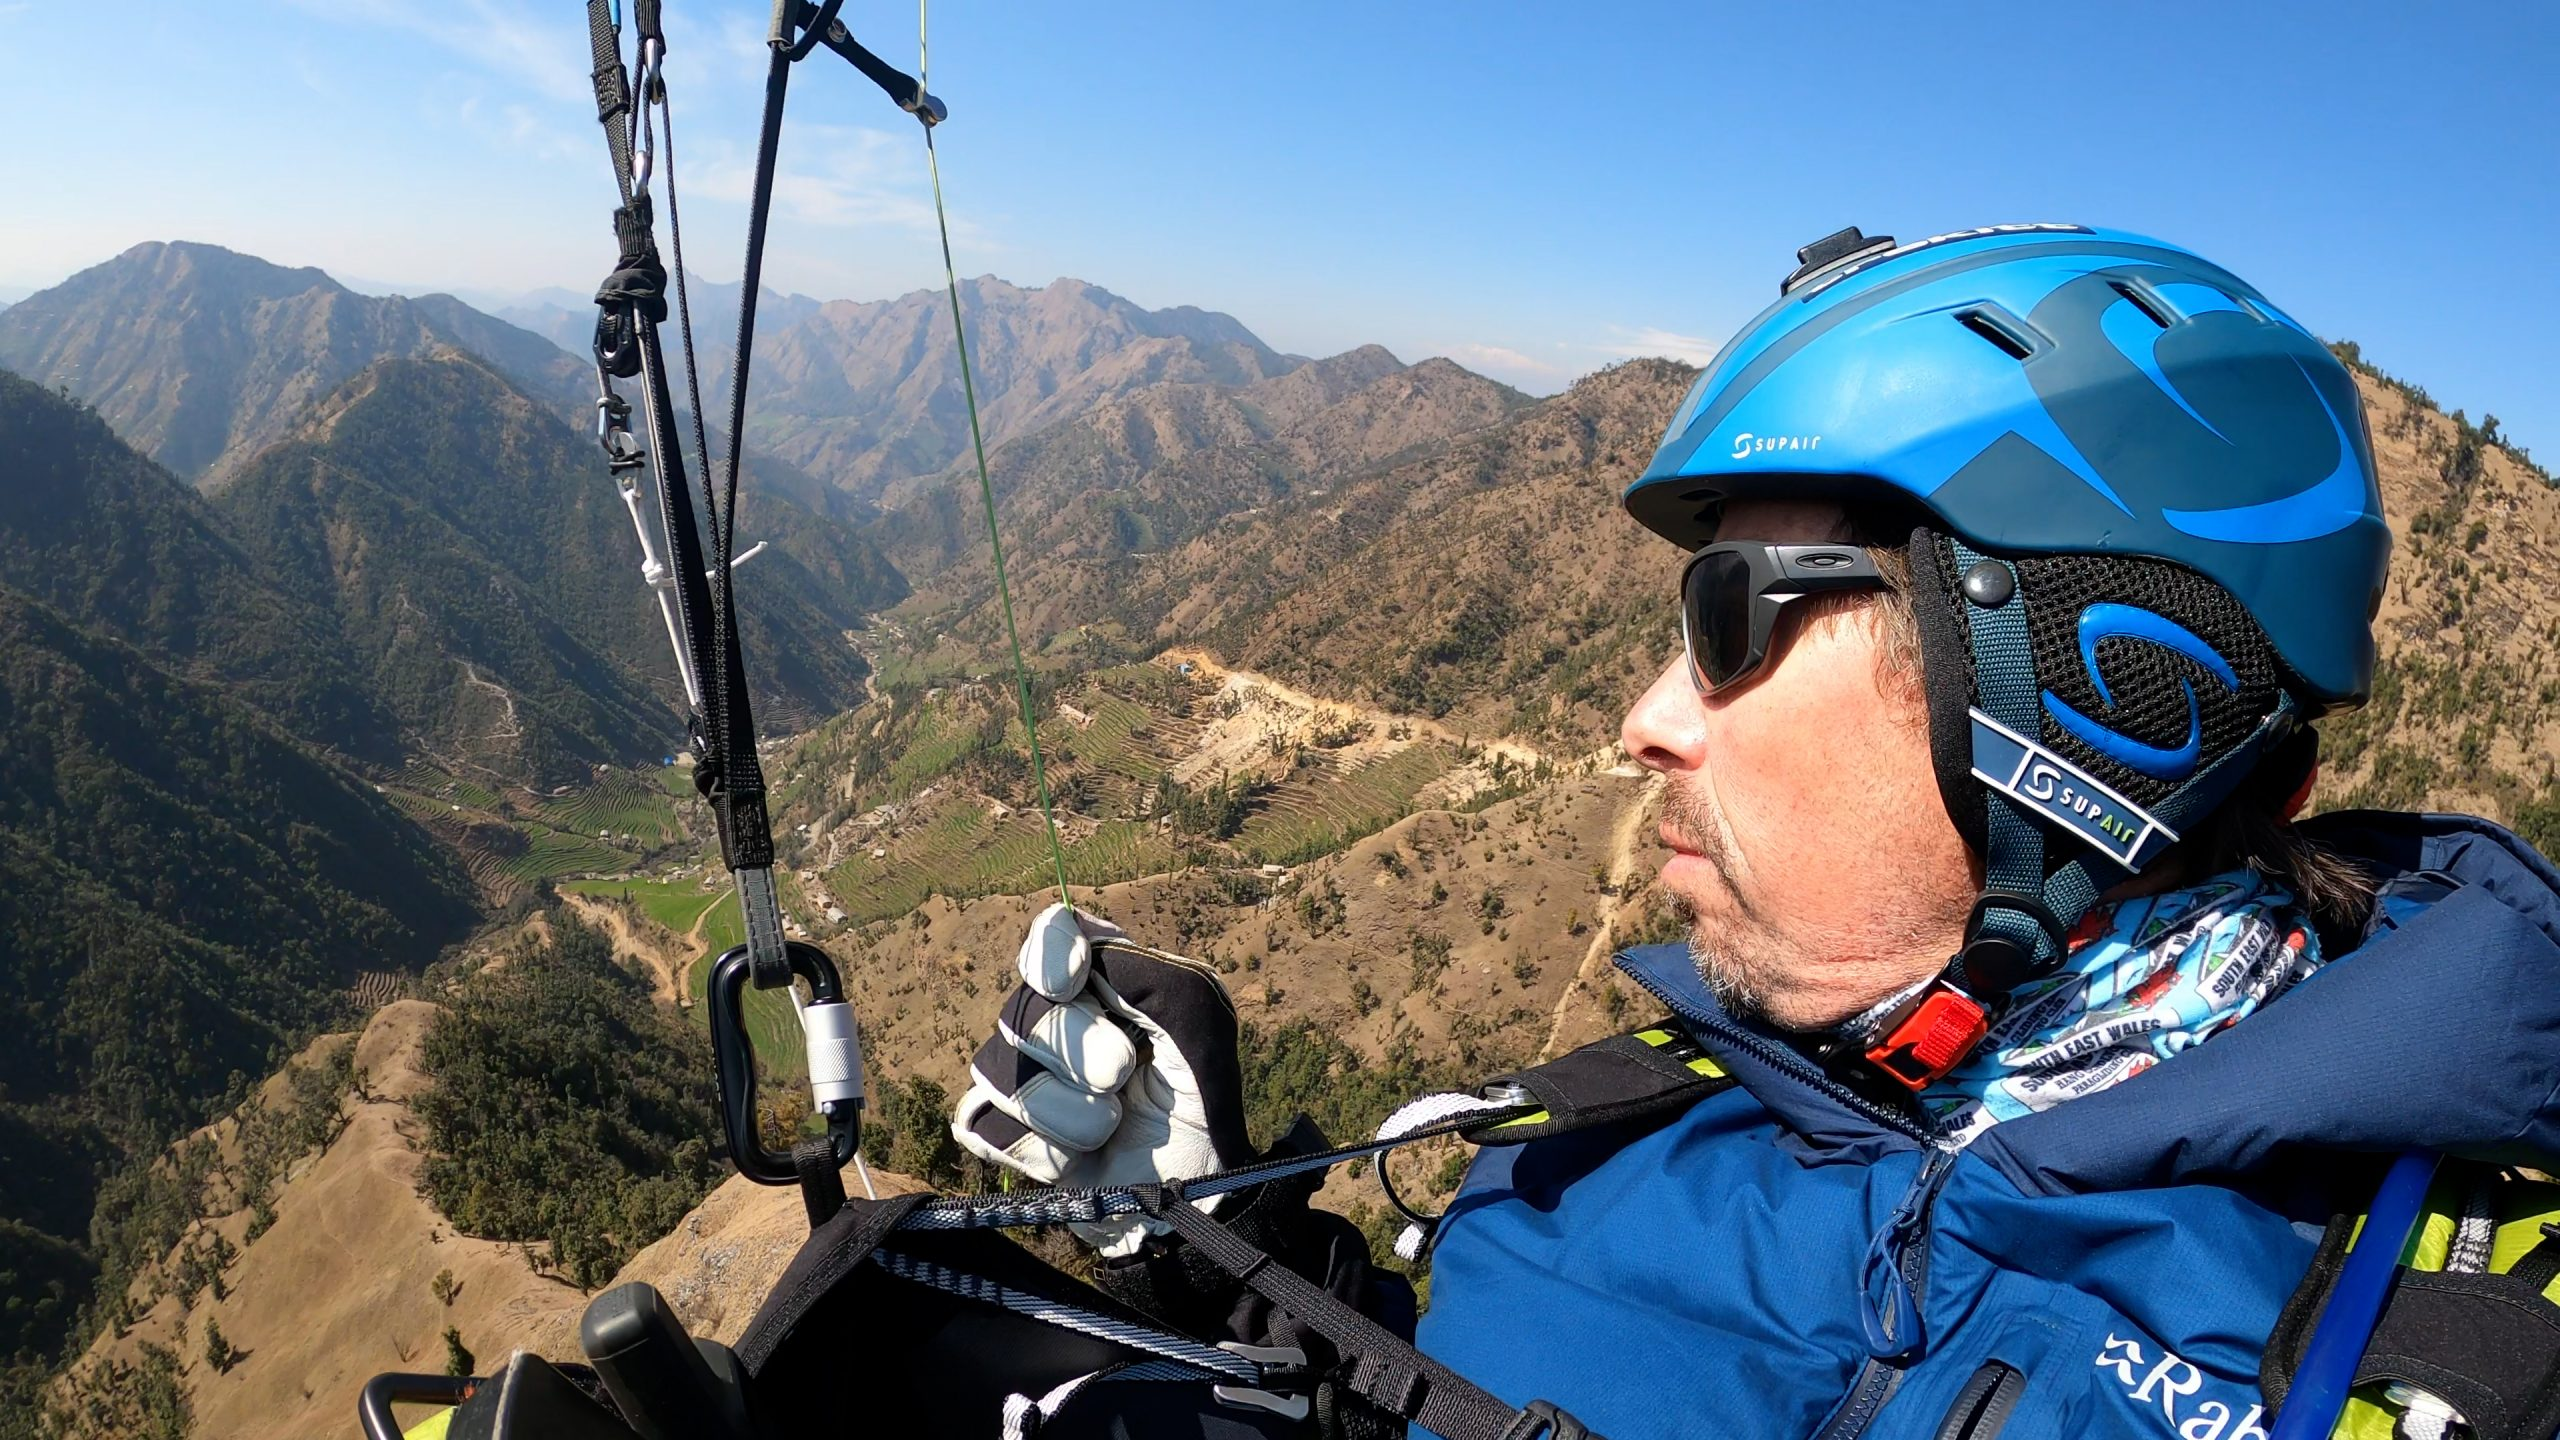 Steven Mackintosh's solo paragliding traverse of Nepal